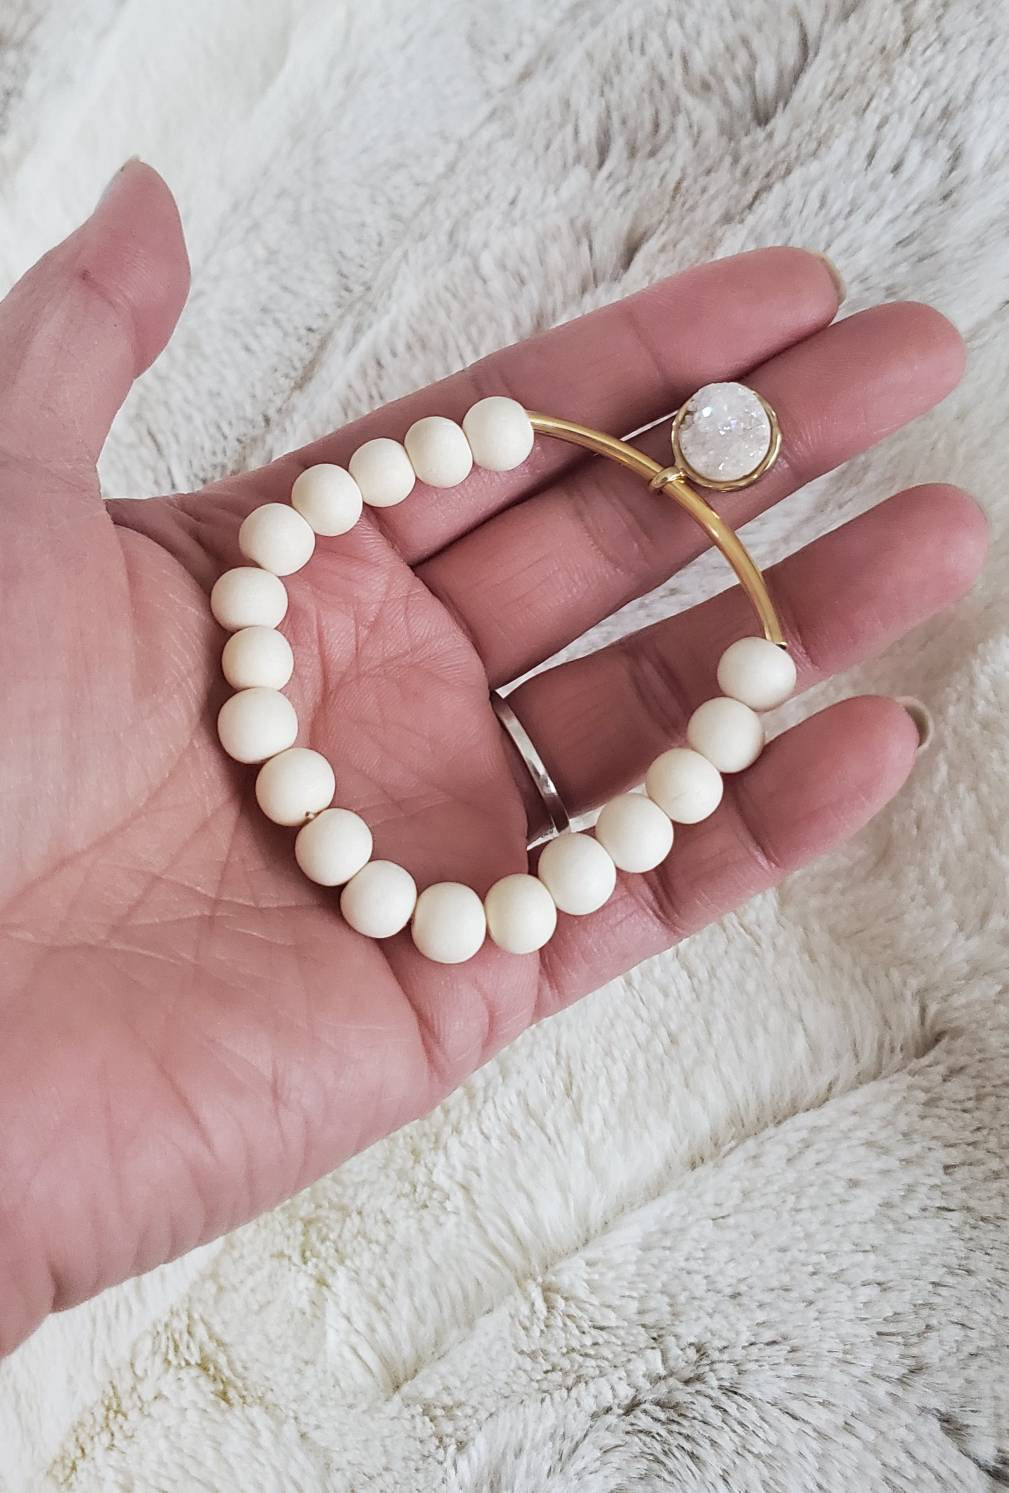 Aretez White Wood Curved Tube with Druzy Charm (genuine stone) Bracelet (8mm beads)